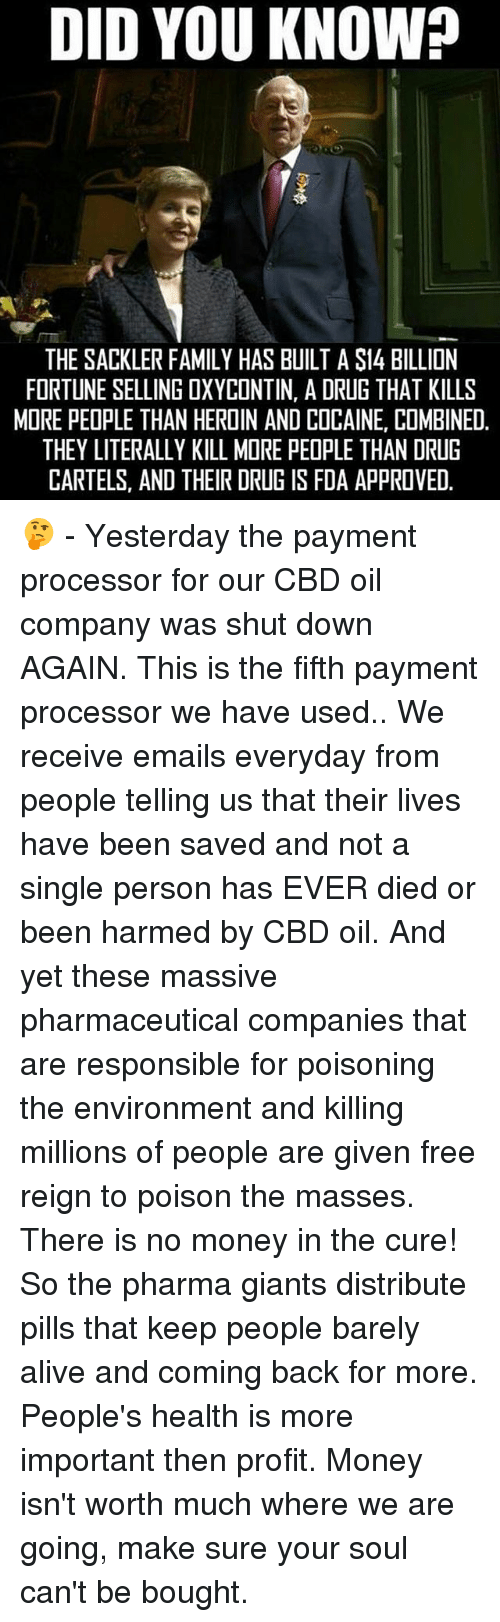 Alive, Family, and Heroin: DID YOU KNOW?  THE SACKLER FAMILY HAS BUILT A S14 BILLION  FORTUNE SELLING OXYCONTIN, A DRUG THAT KILLS  MORE PEOPLE THAN HEROIN AND COCAINE, COMBINED  THEY LITERALLY KILL MIRE PEOPLE THAN DRUG  CARTELS, AND THEIR DRUG IS FDA APPROVED 🤔 - Yesterday the payment processor for our CBD oil company was shut down AGAIN. This is the fifth payment processor we have used.. We receive emails everyday from people telling us that their lives have been saved and not a single person has EVER died or been harmed by CBD oil. And yet these massive pharmaceutical companies that are responsible for poisoning the environment and killing millions of people are given free reign to poison the masses. There is no money in the cure! So the pharma giants distribute pills that keep people barely alive and coming back for more. People's health is more important then profit. Money isn't worth much where we are going, make sure your soul can't be bought.